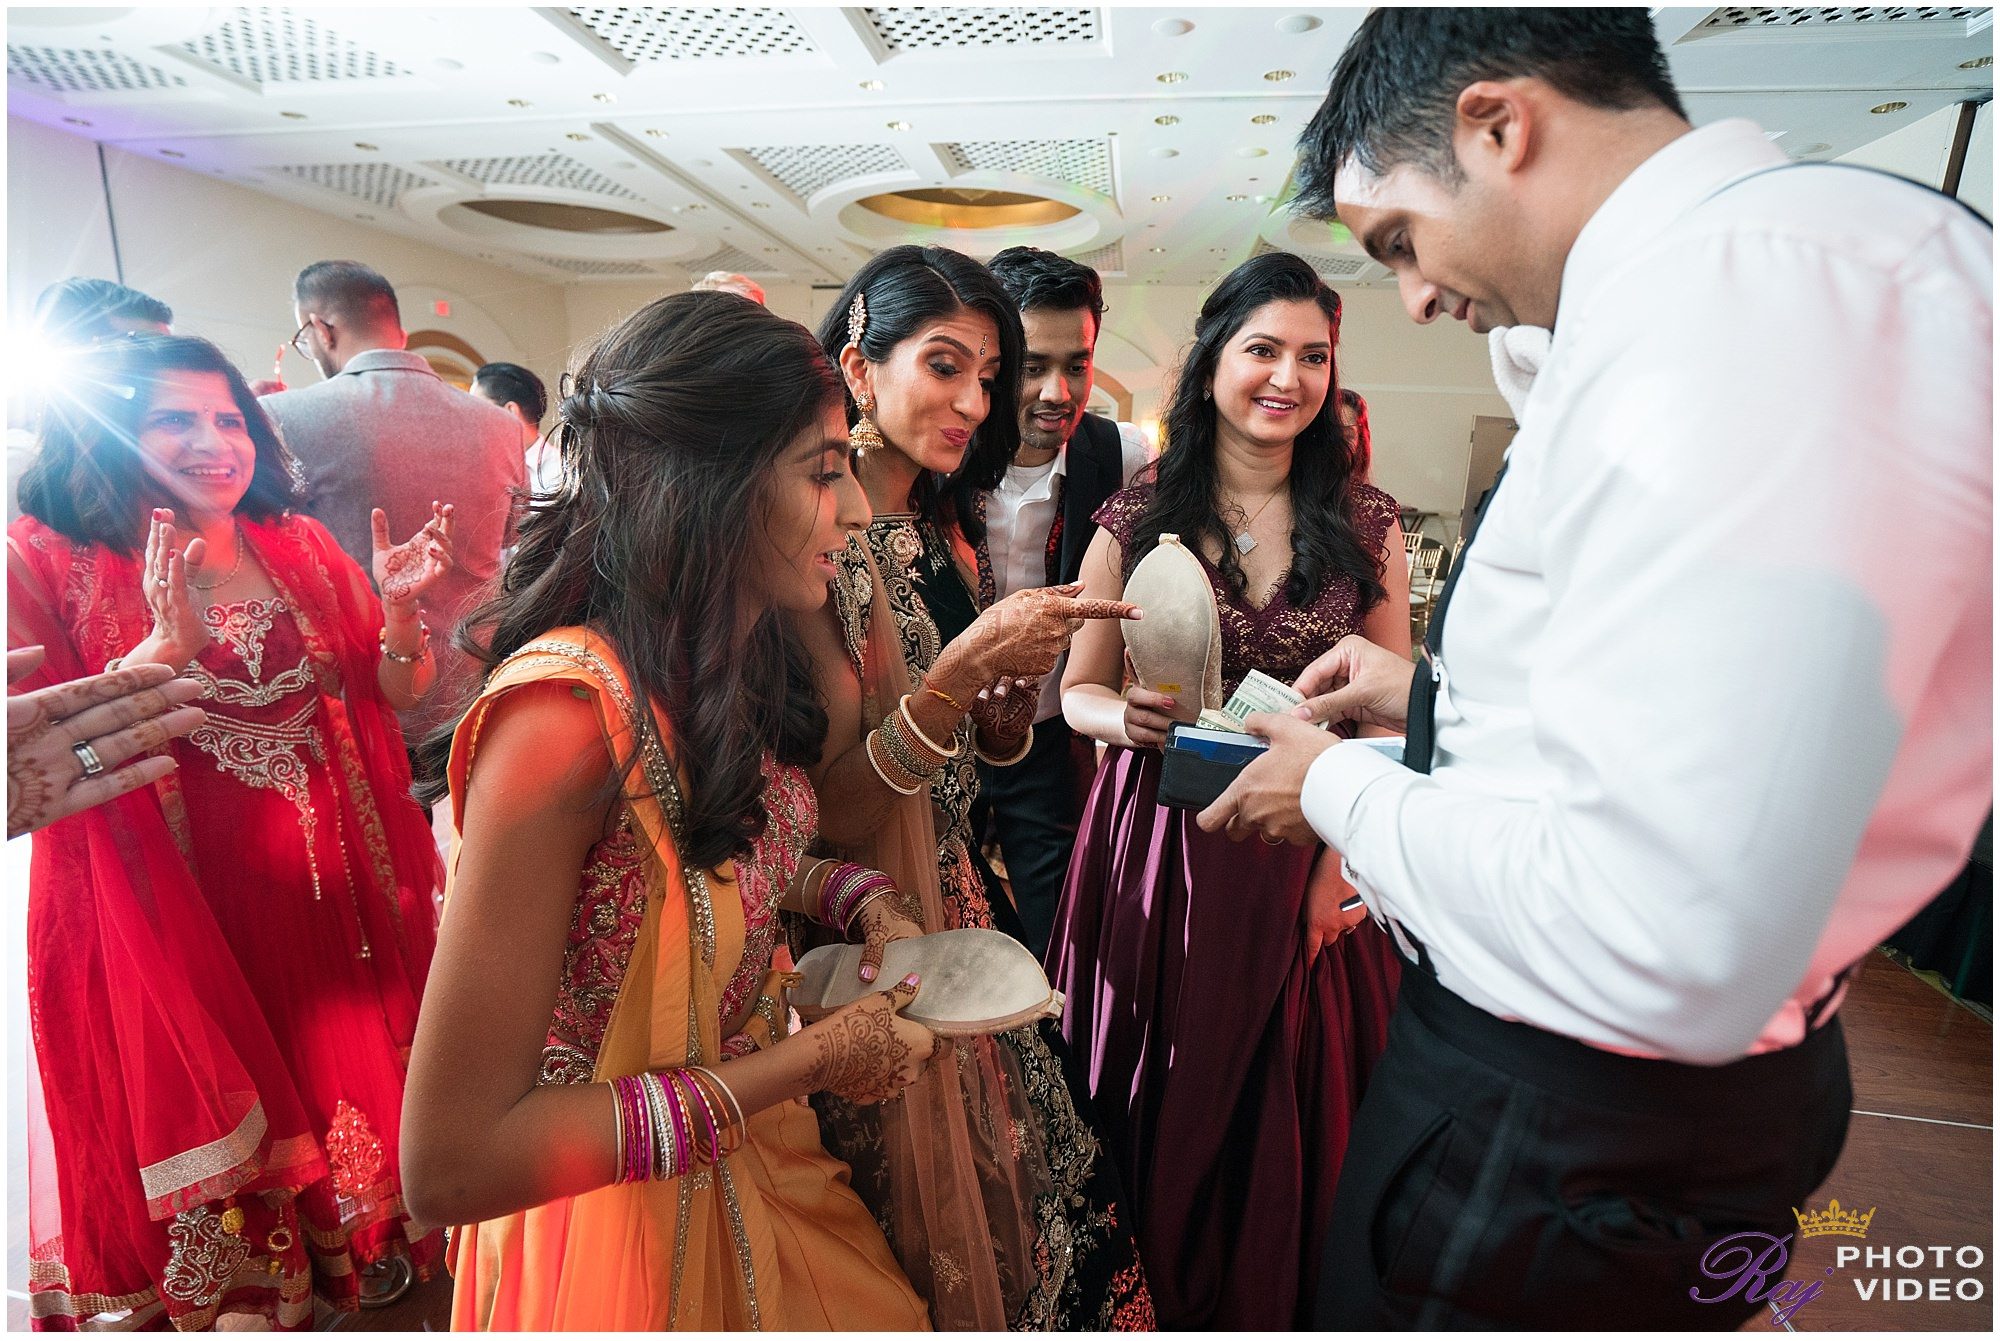 Scottsdale_Marriott_at_McDowell_Mountains_Arizona_Indian_Wedding_Sapna_Shyam-93.jpg